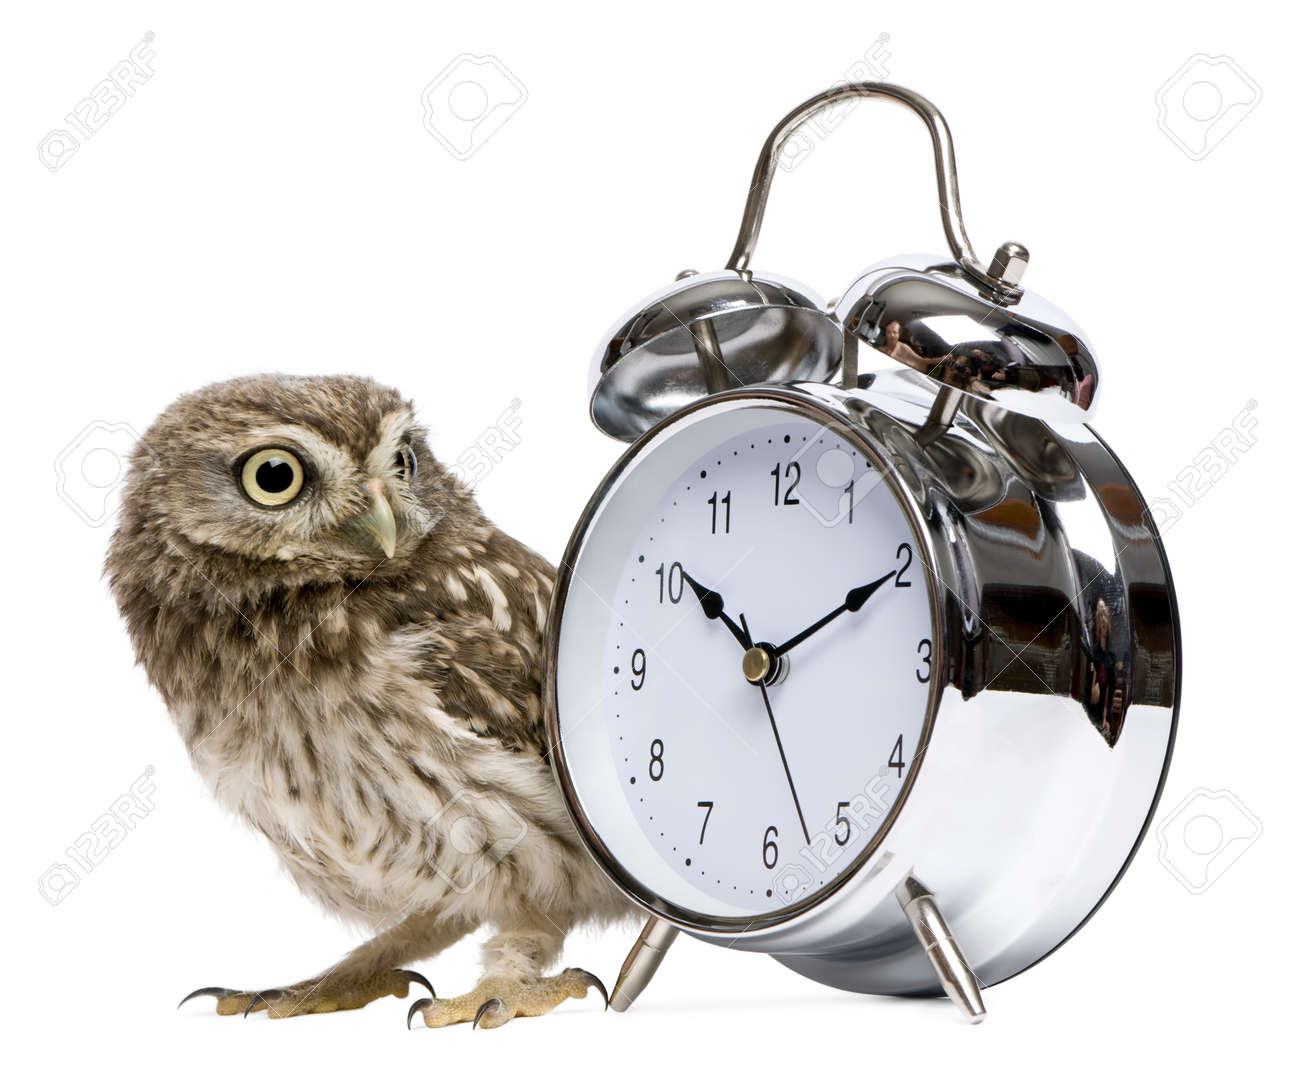 Little Owl, 50 days old, Athene noctua, in front of a white background with alarm clock Stock Photo - 7980434